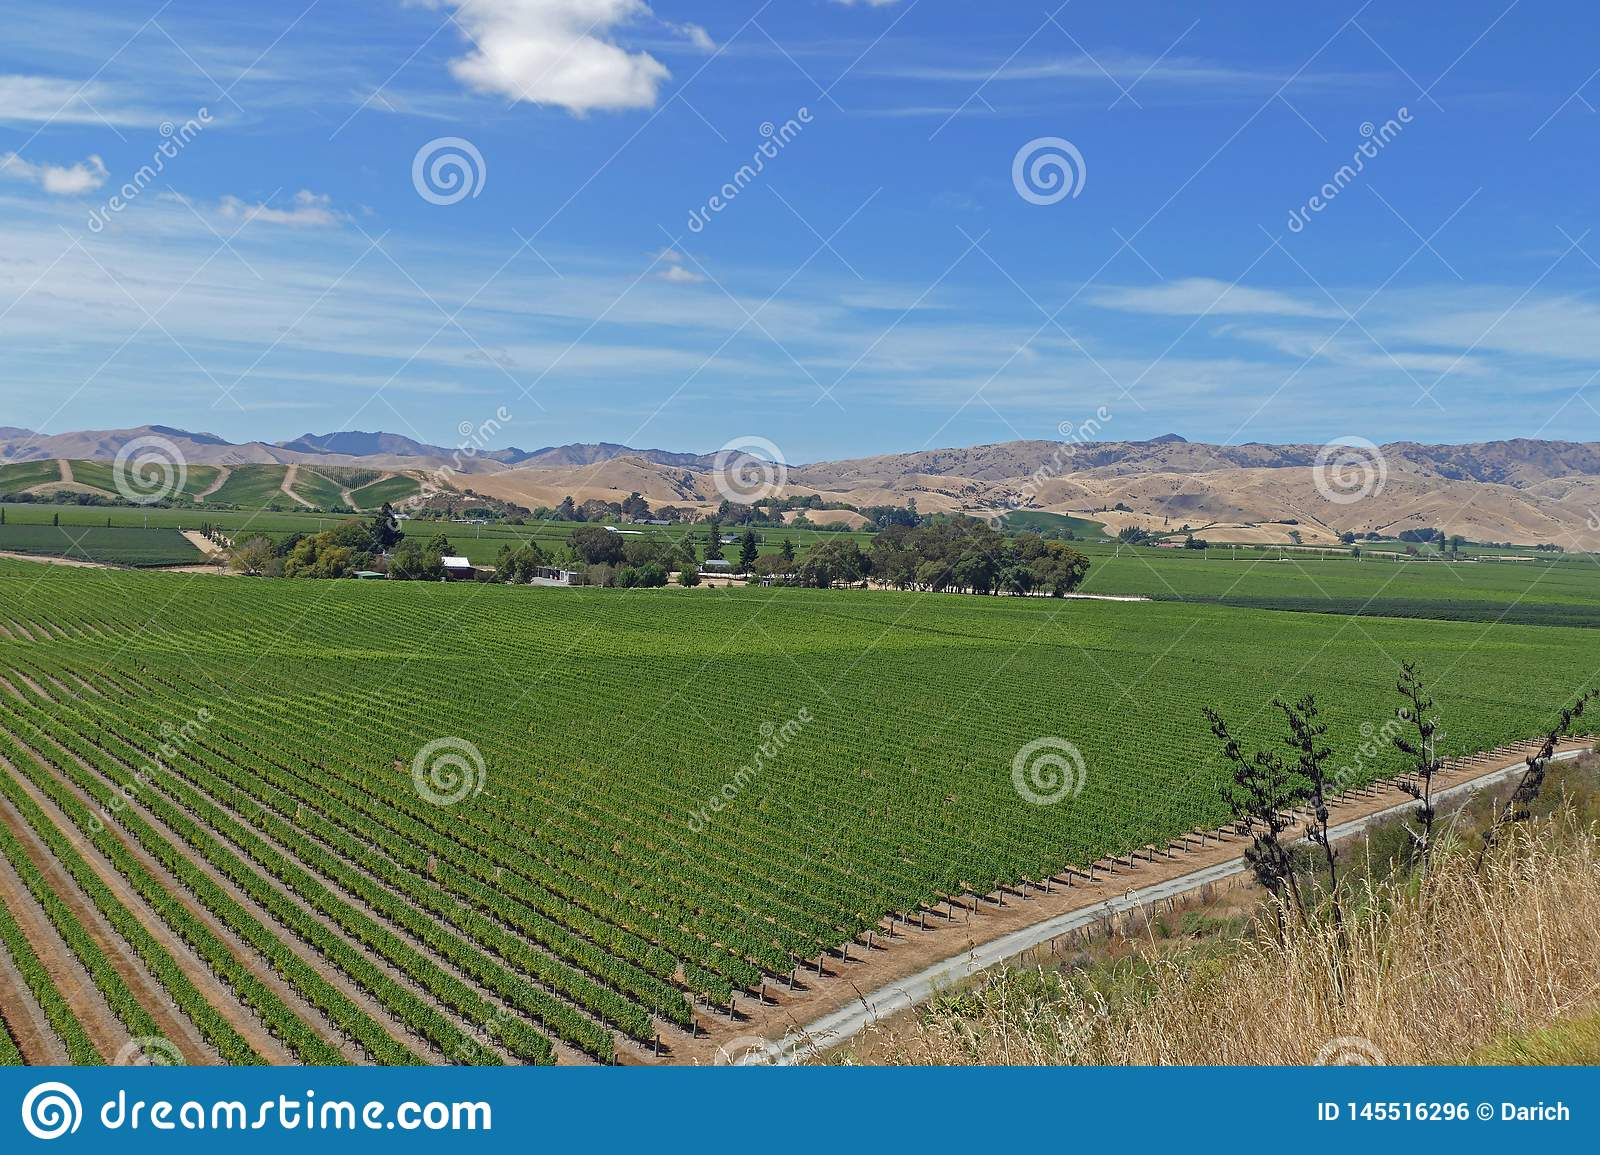 Fine wines from a vineyard in New Zealand